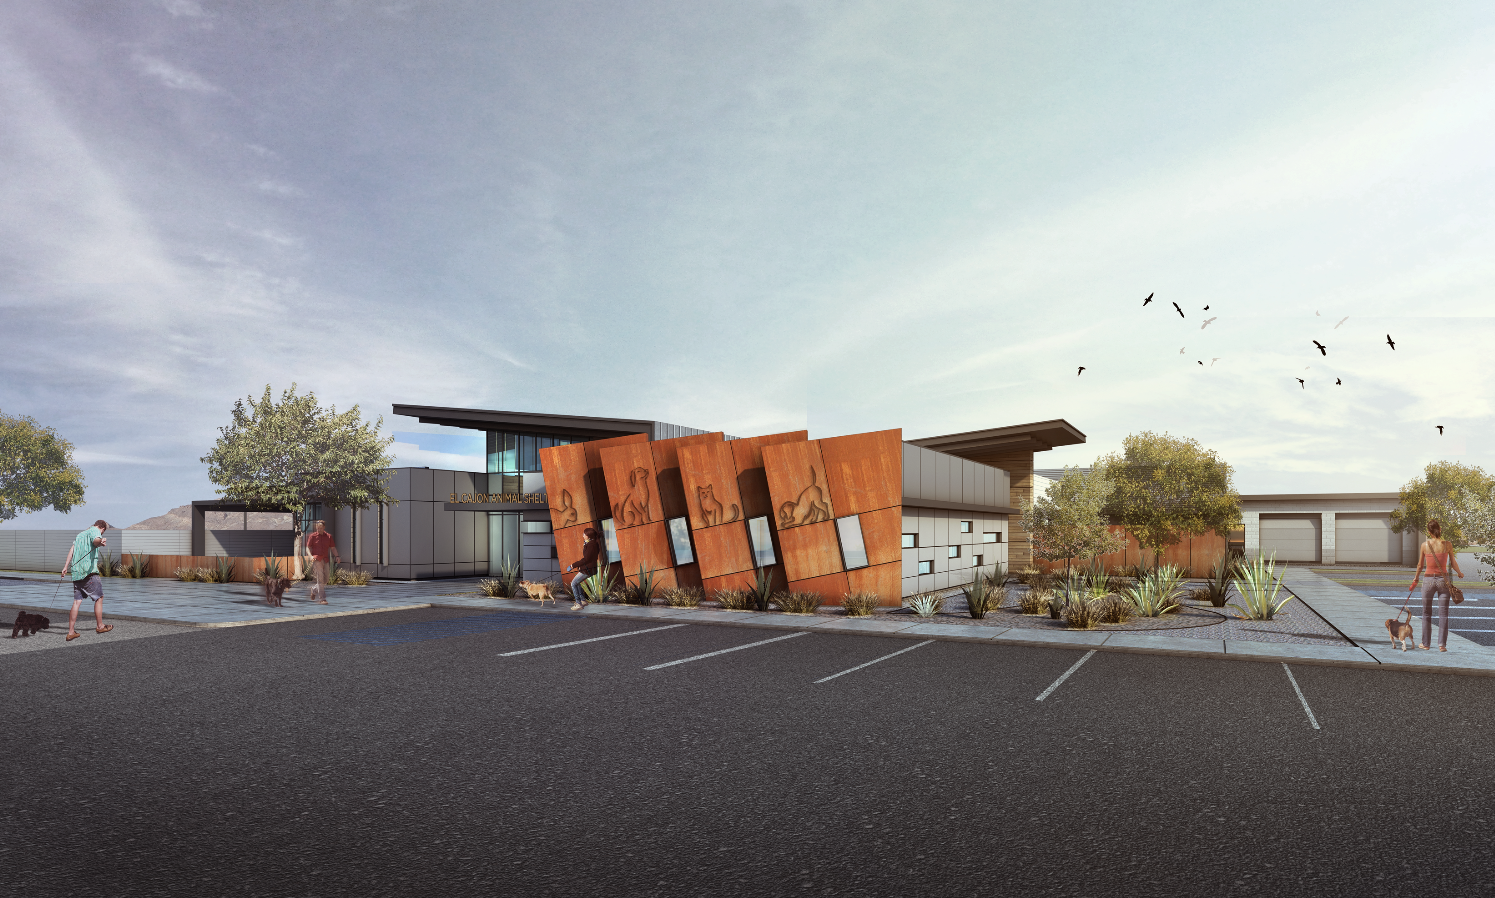 El Cajon Animal Shelter (Design by FPB Architects)